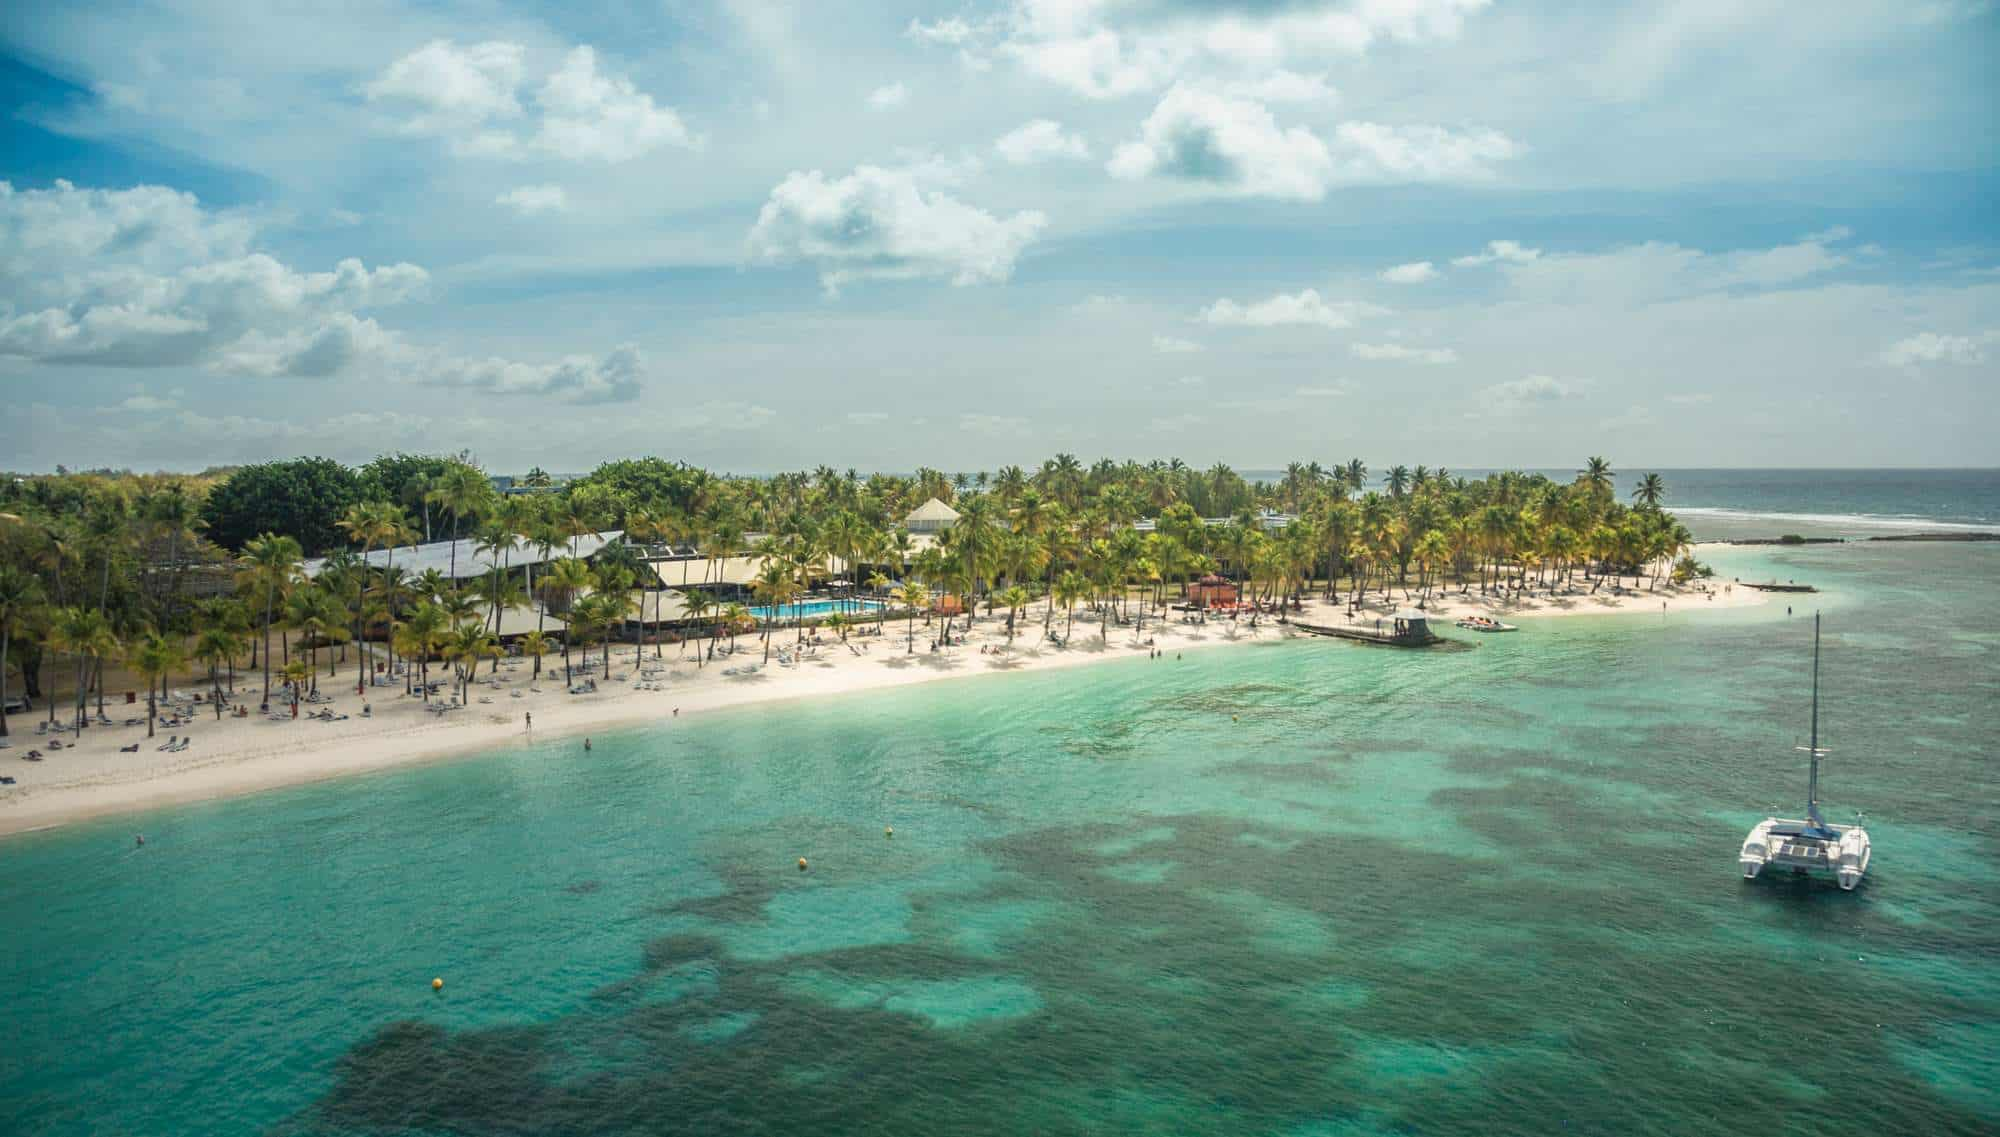 Club Med Caravelle, Guadeloupe - Best All-inclusive Caribbean Resorts